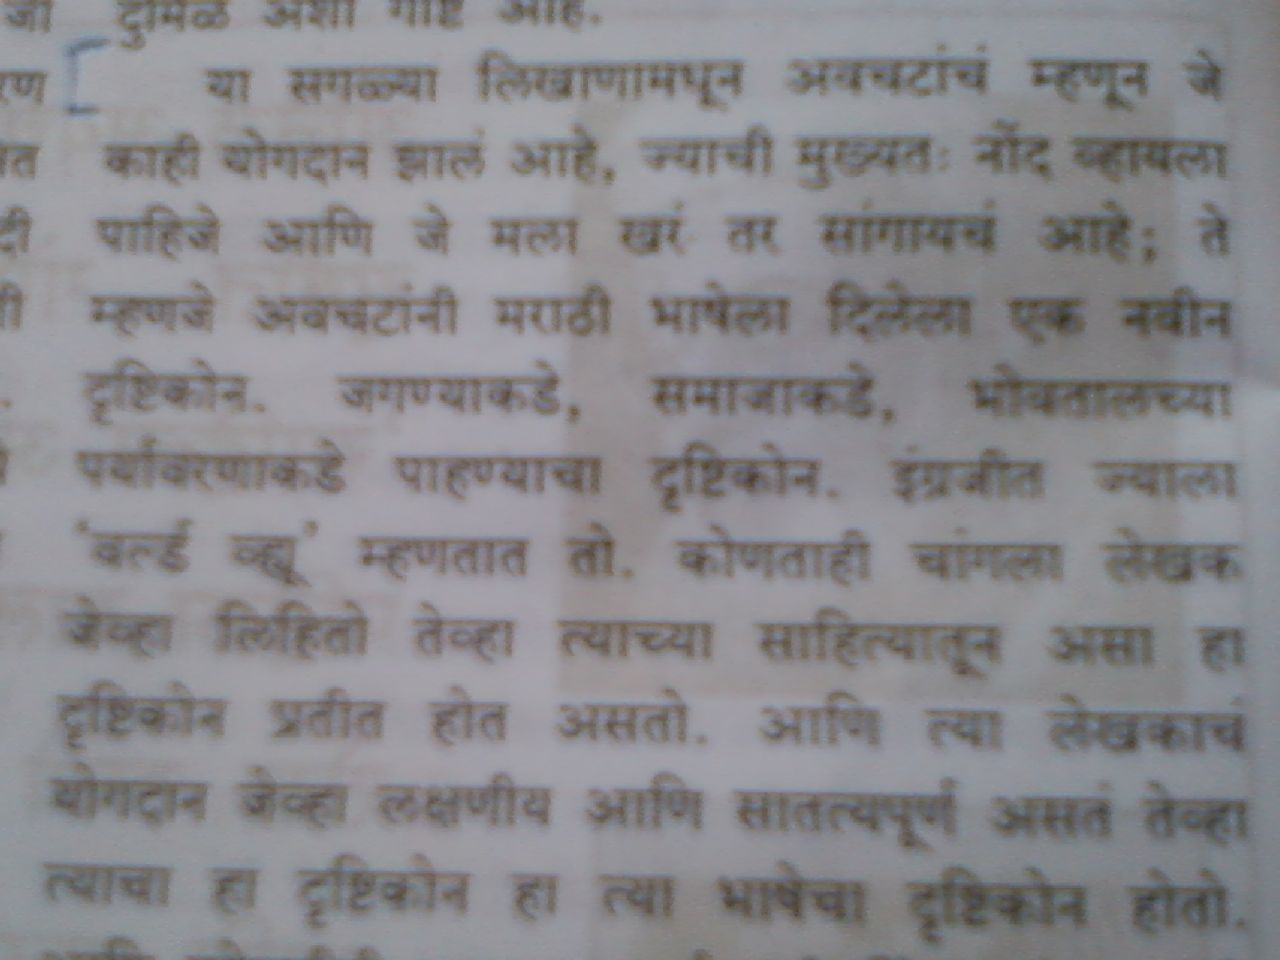 computer my friend essay in marathi